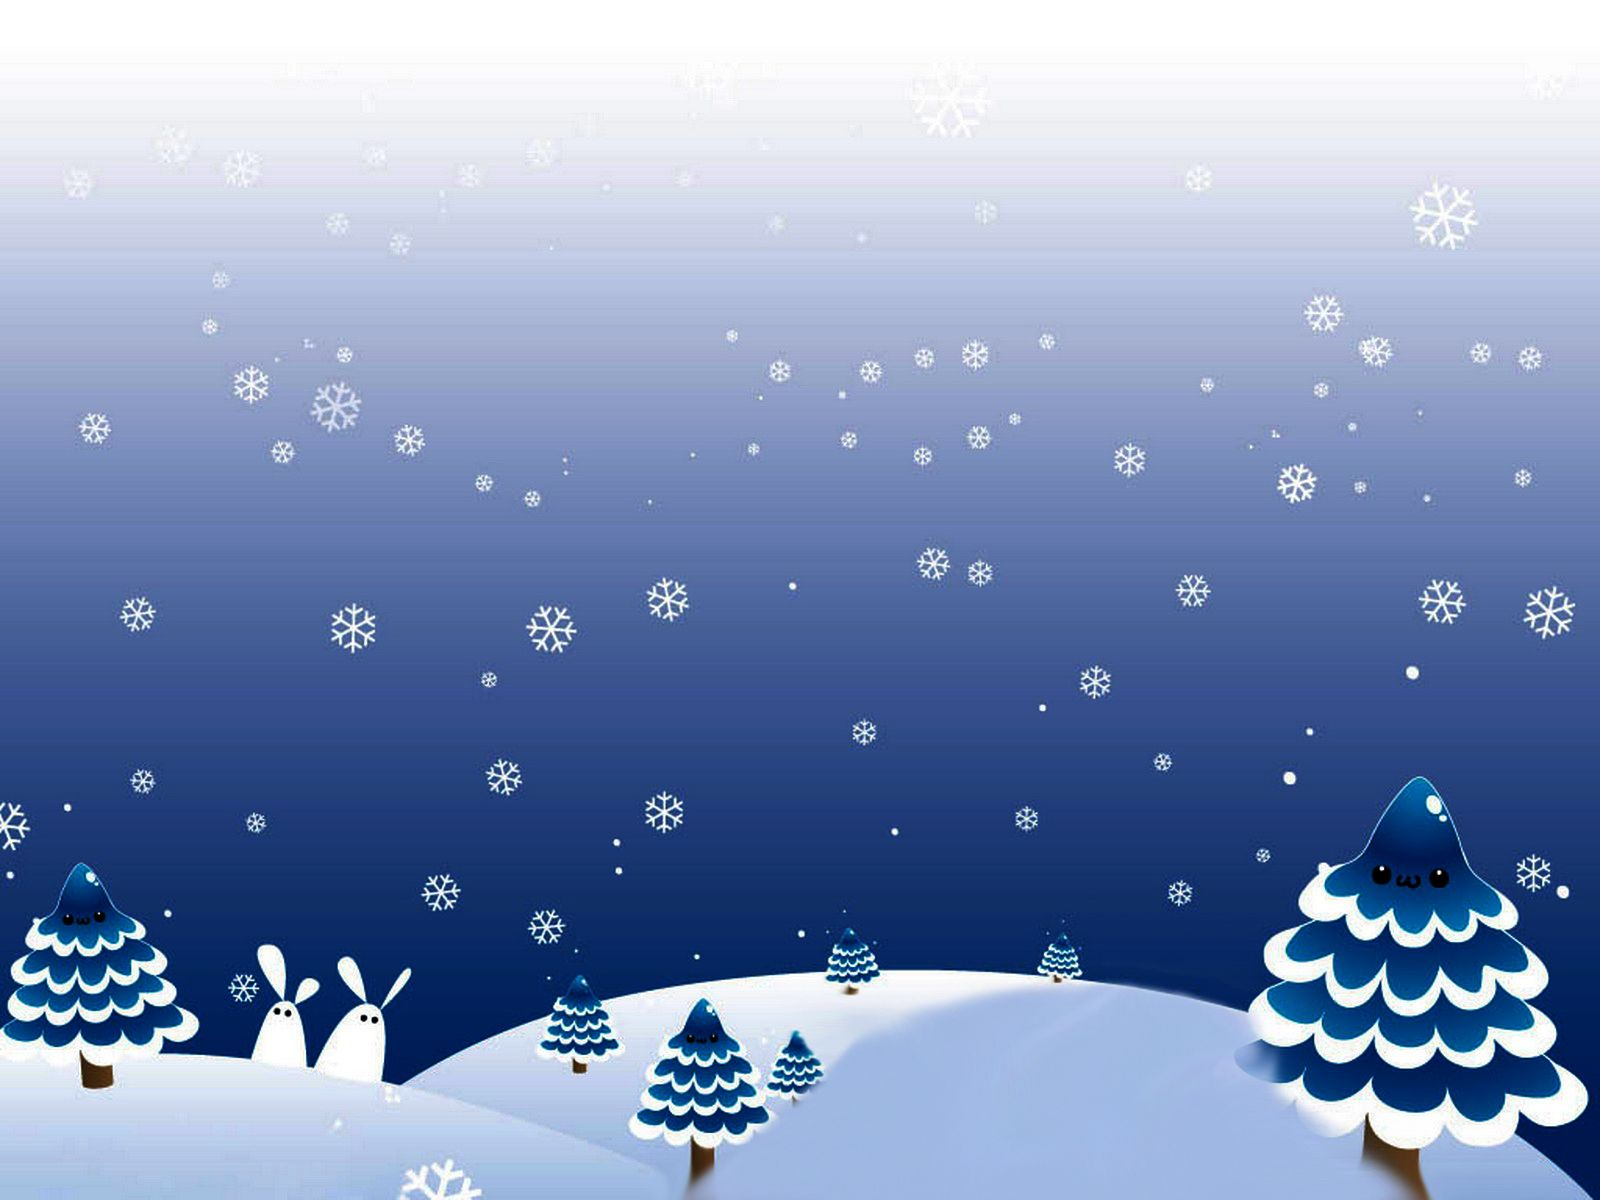 Winter Christmas Day Backgrounds For Powerpoint